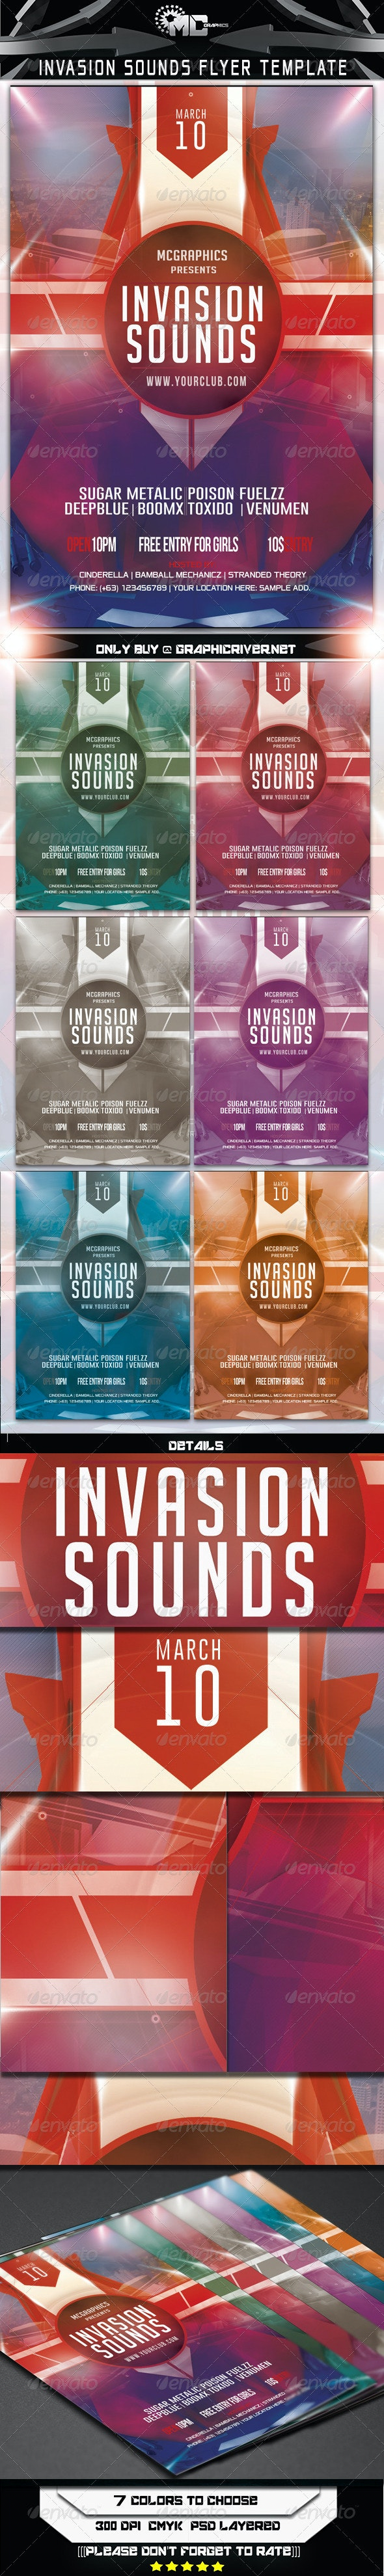 Invasion Sounds Flyer Template - Clubs & Parties Events